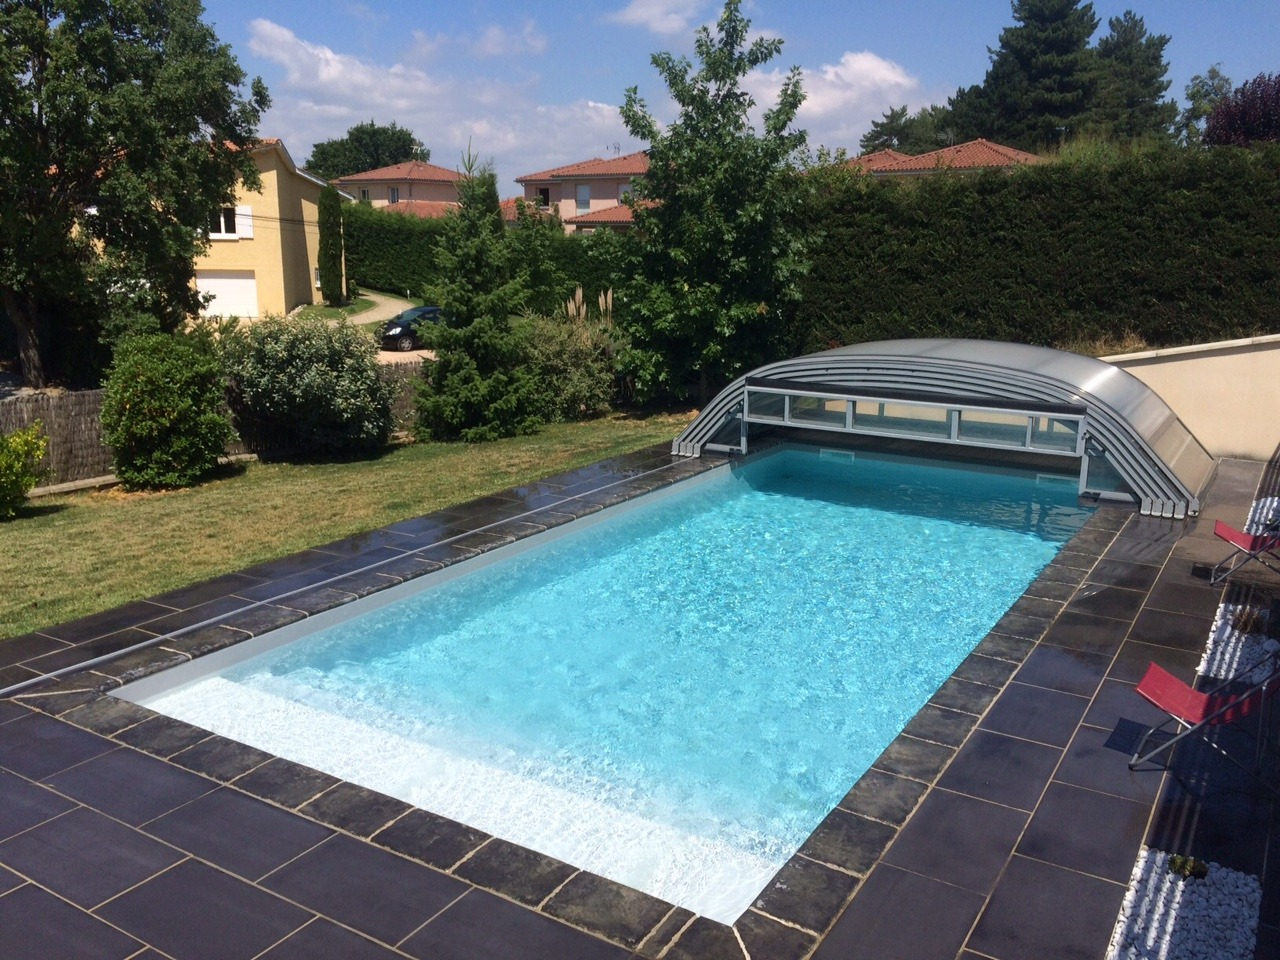 Elitys mianso abri de piscine bas t lescopique ec 39 creation for Abri de piscine sokool